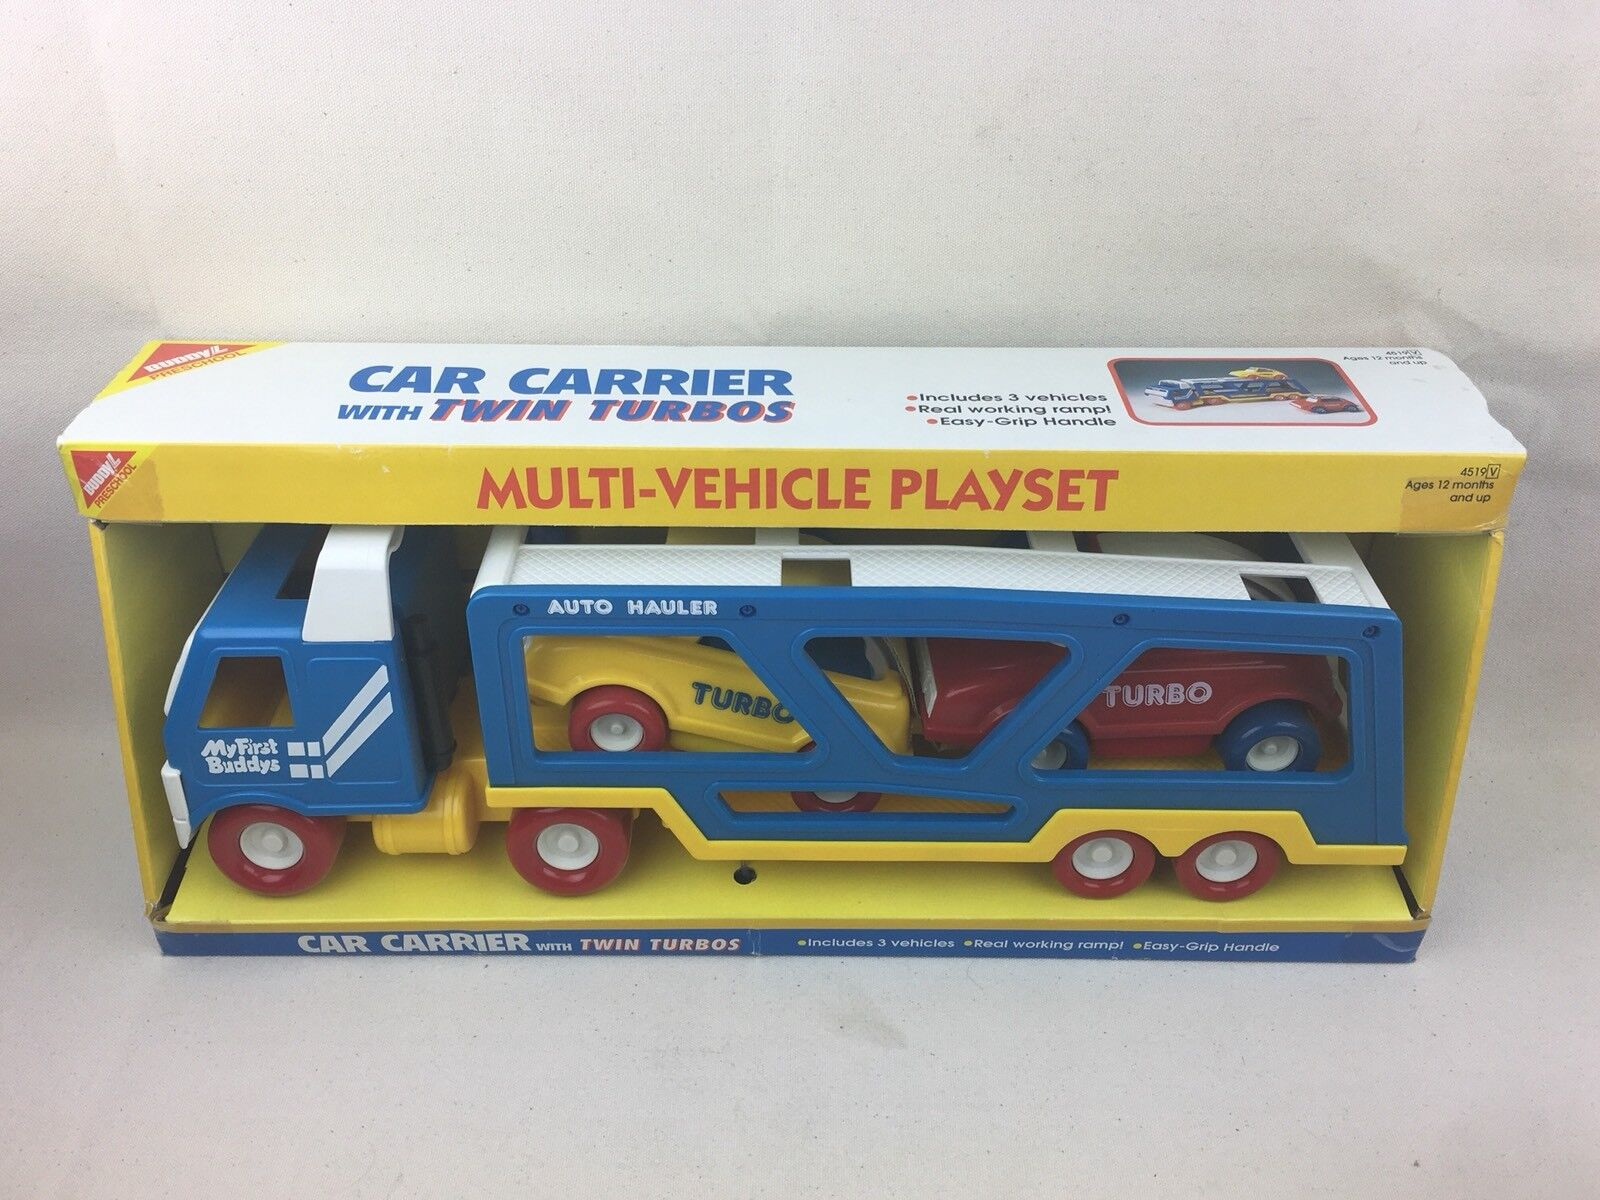 Vintage 1994 Buddy L Car Carrier w  Twin Turbos Playset My First Buddy BNIB